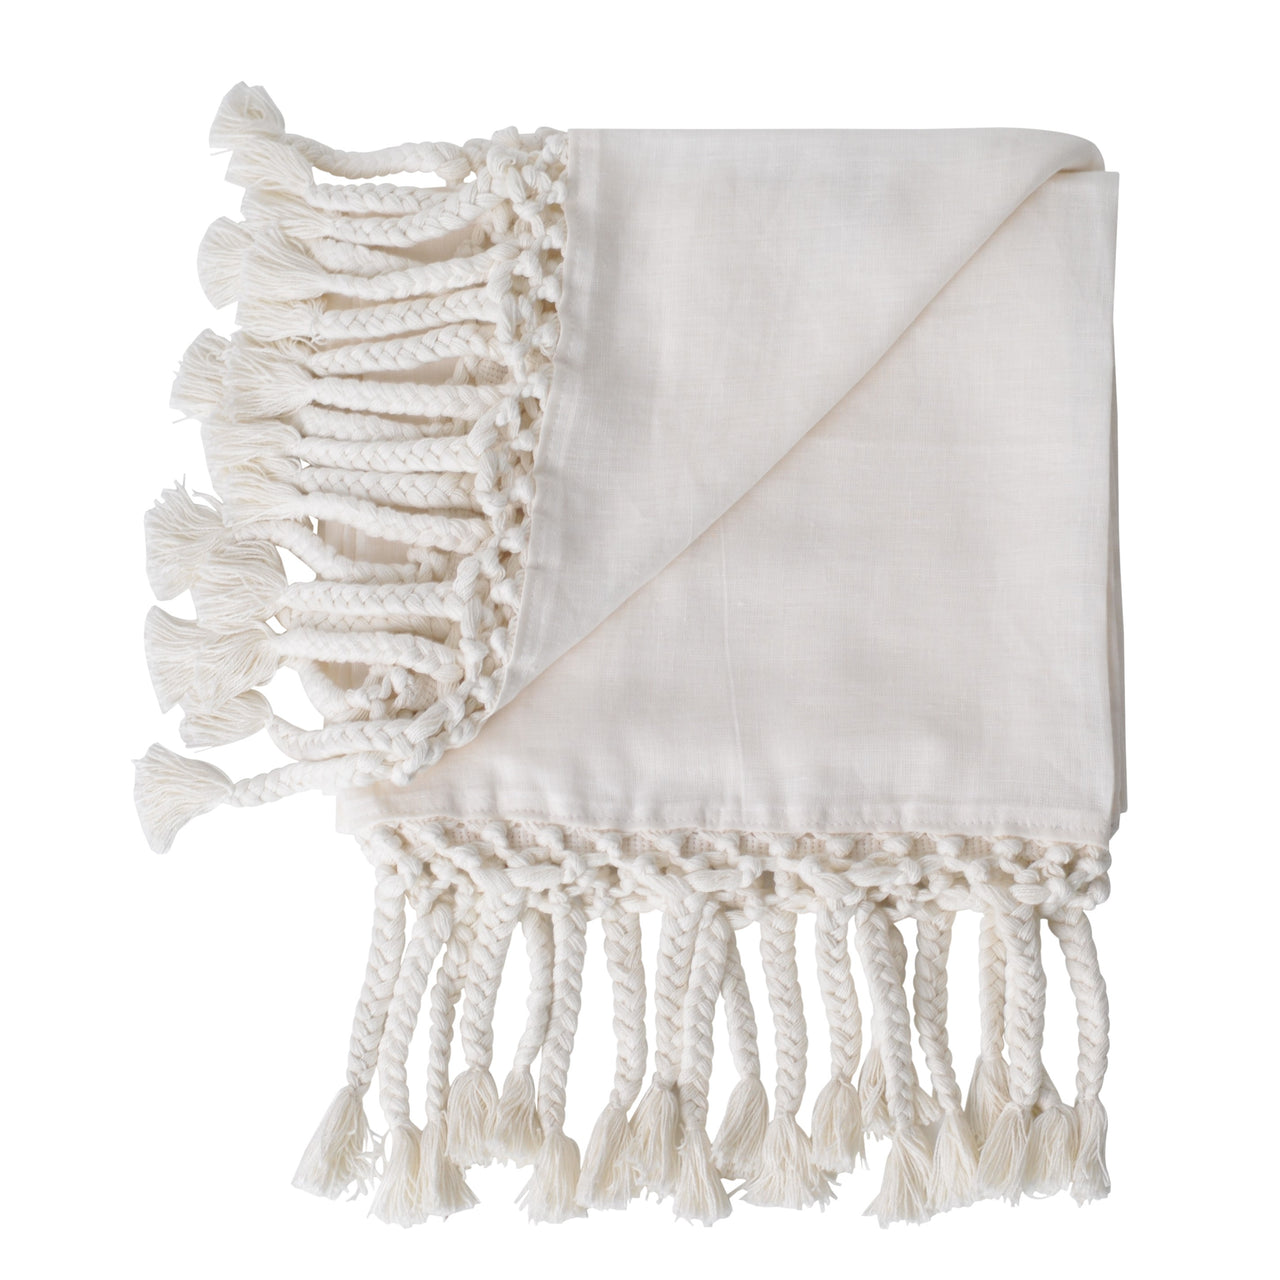 linen macrame white throw blanket texture edge trim ivory neutral